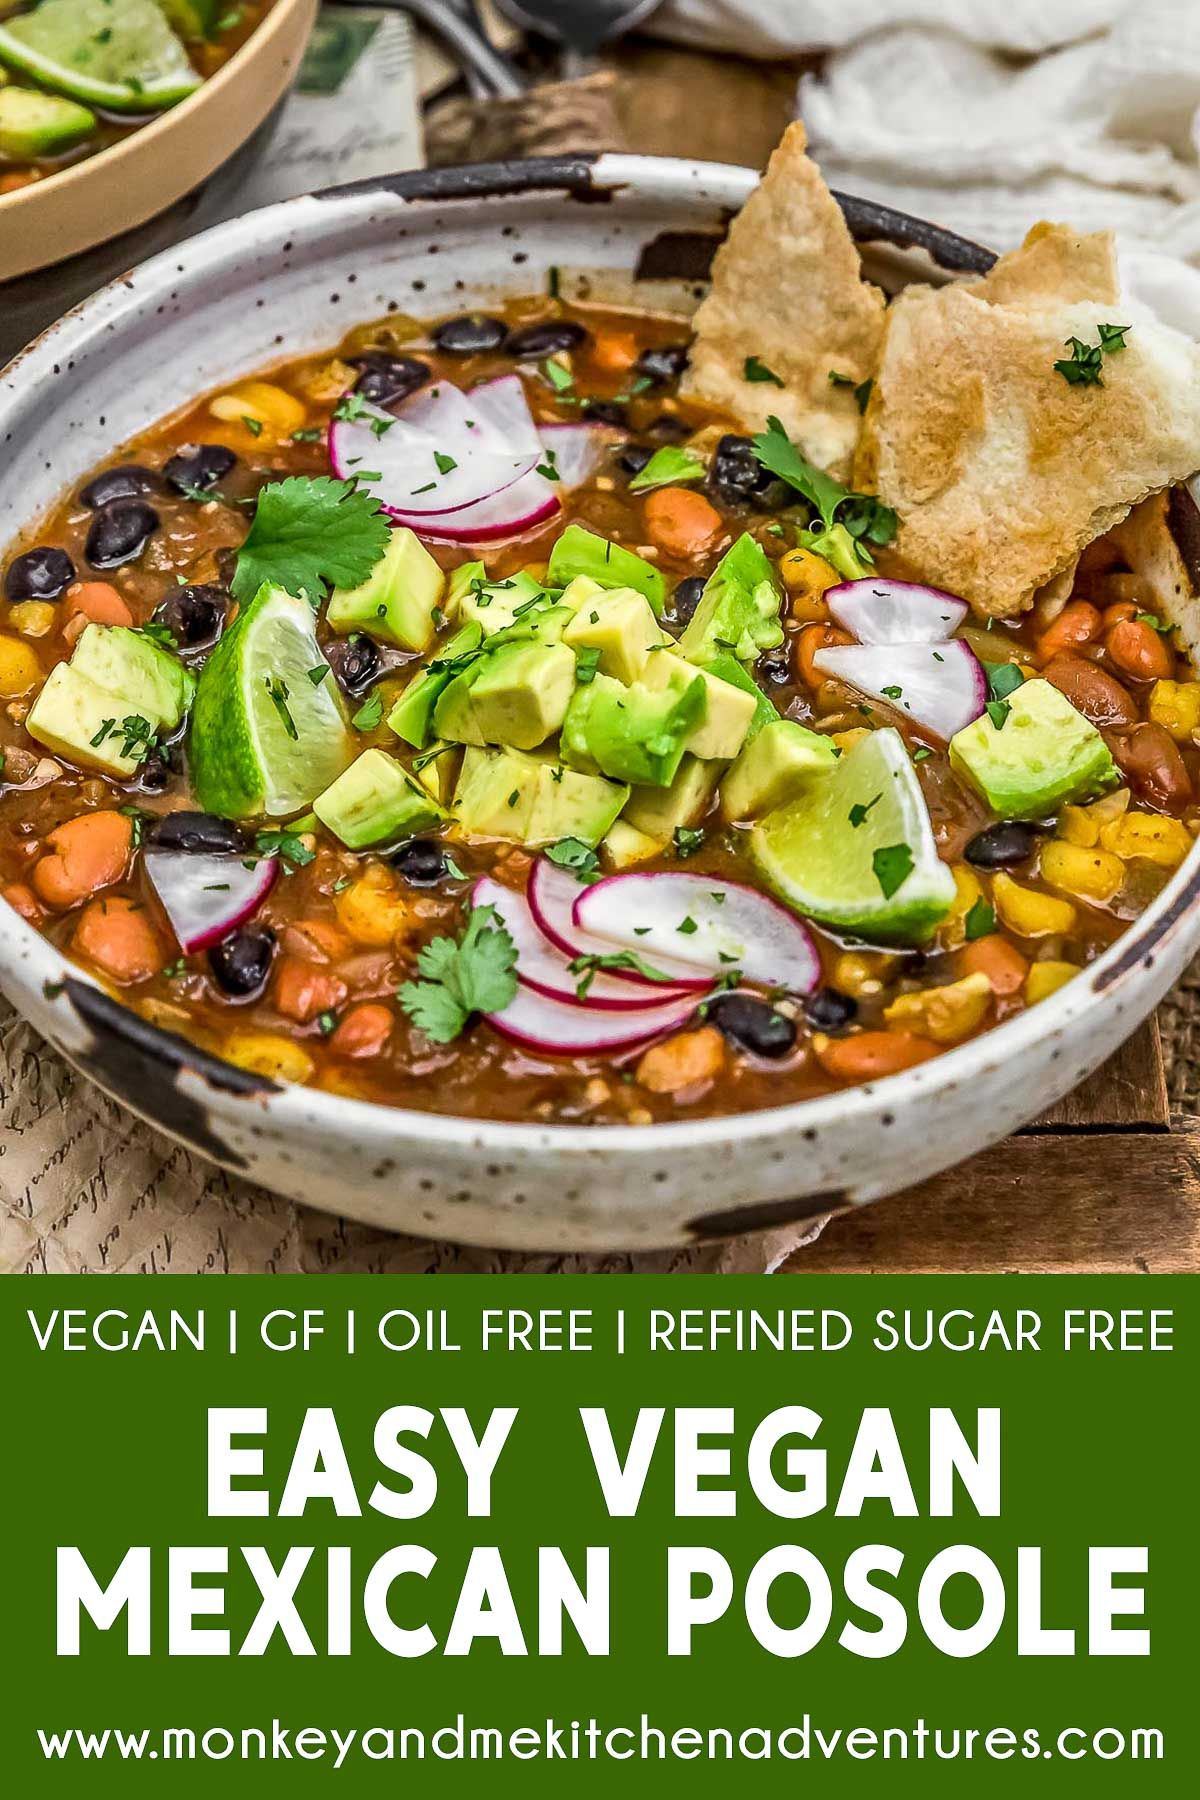 Easy Vegan Mexican Posole Monkey And Me Kitchen Adventures Recipe In 2020 Vegan Mexican Easy Vegan Whole Food Recipes